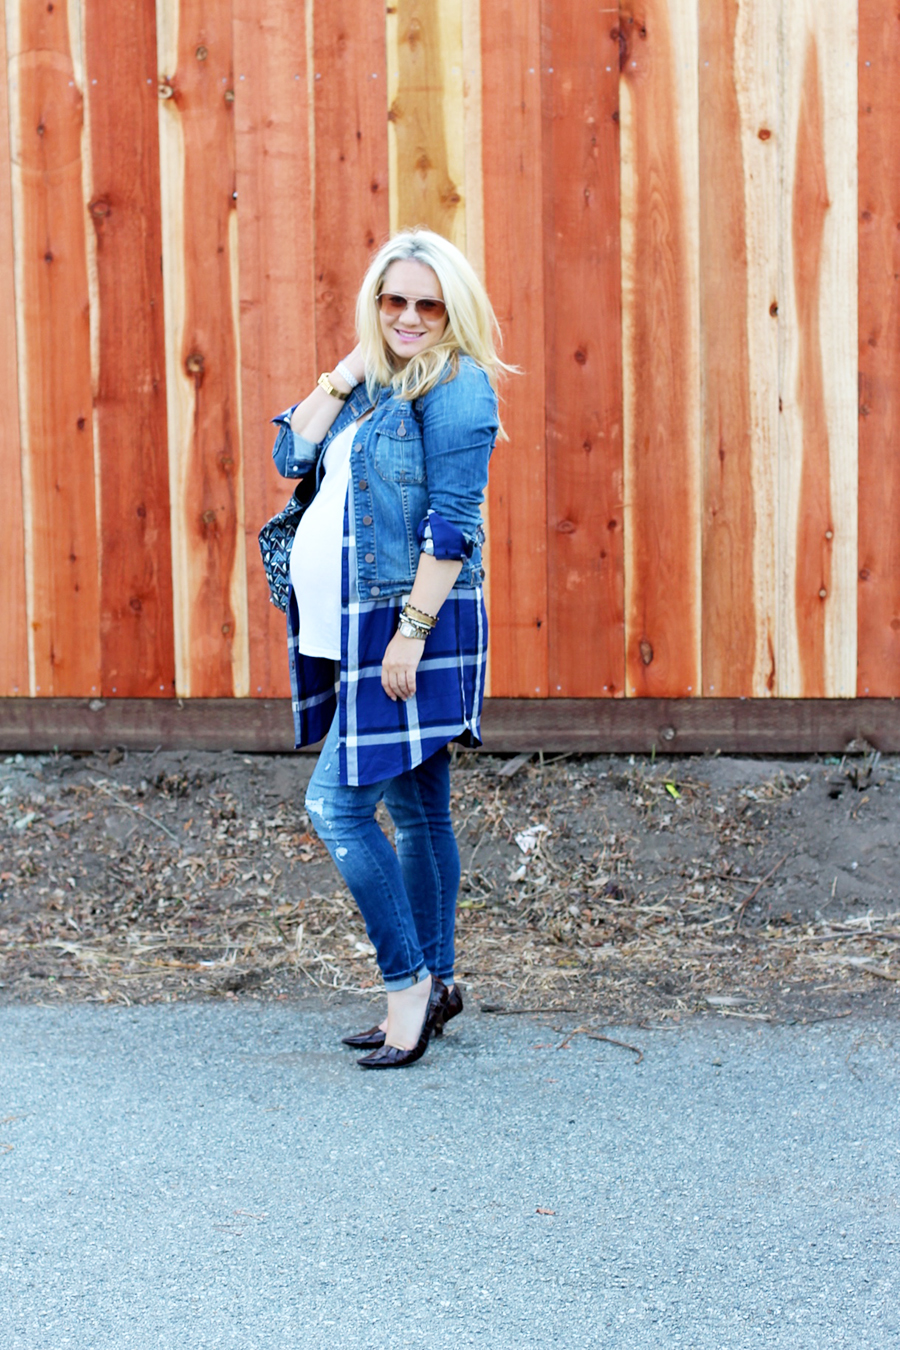 plaid-shirtdress-maternity-style-styling-your-baby-bump-styling-tips-pregnancy-style-have-need-want-11